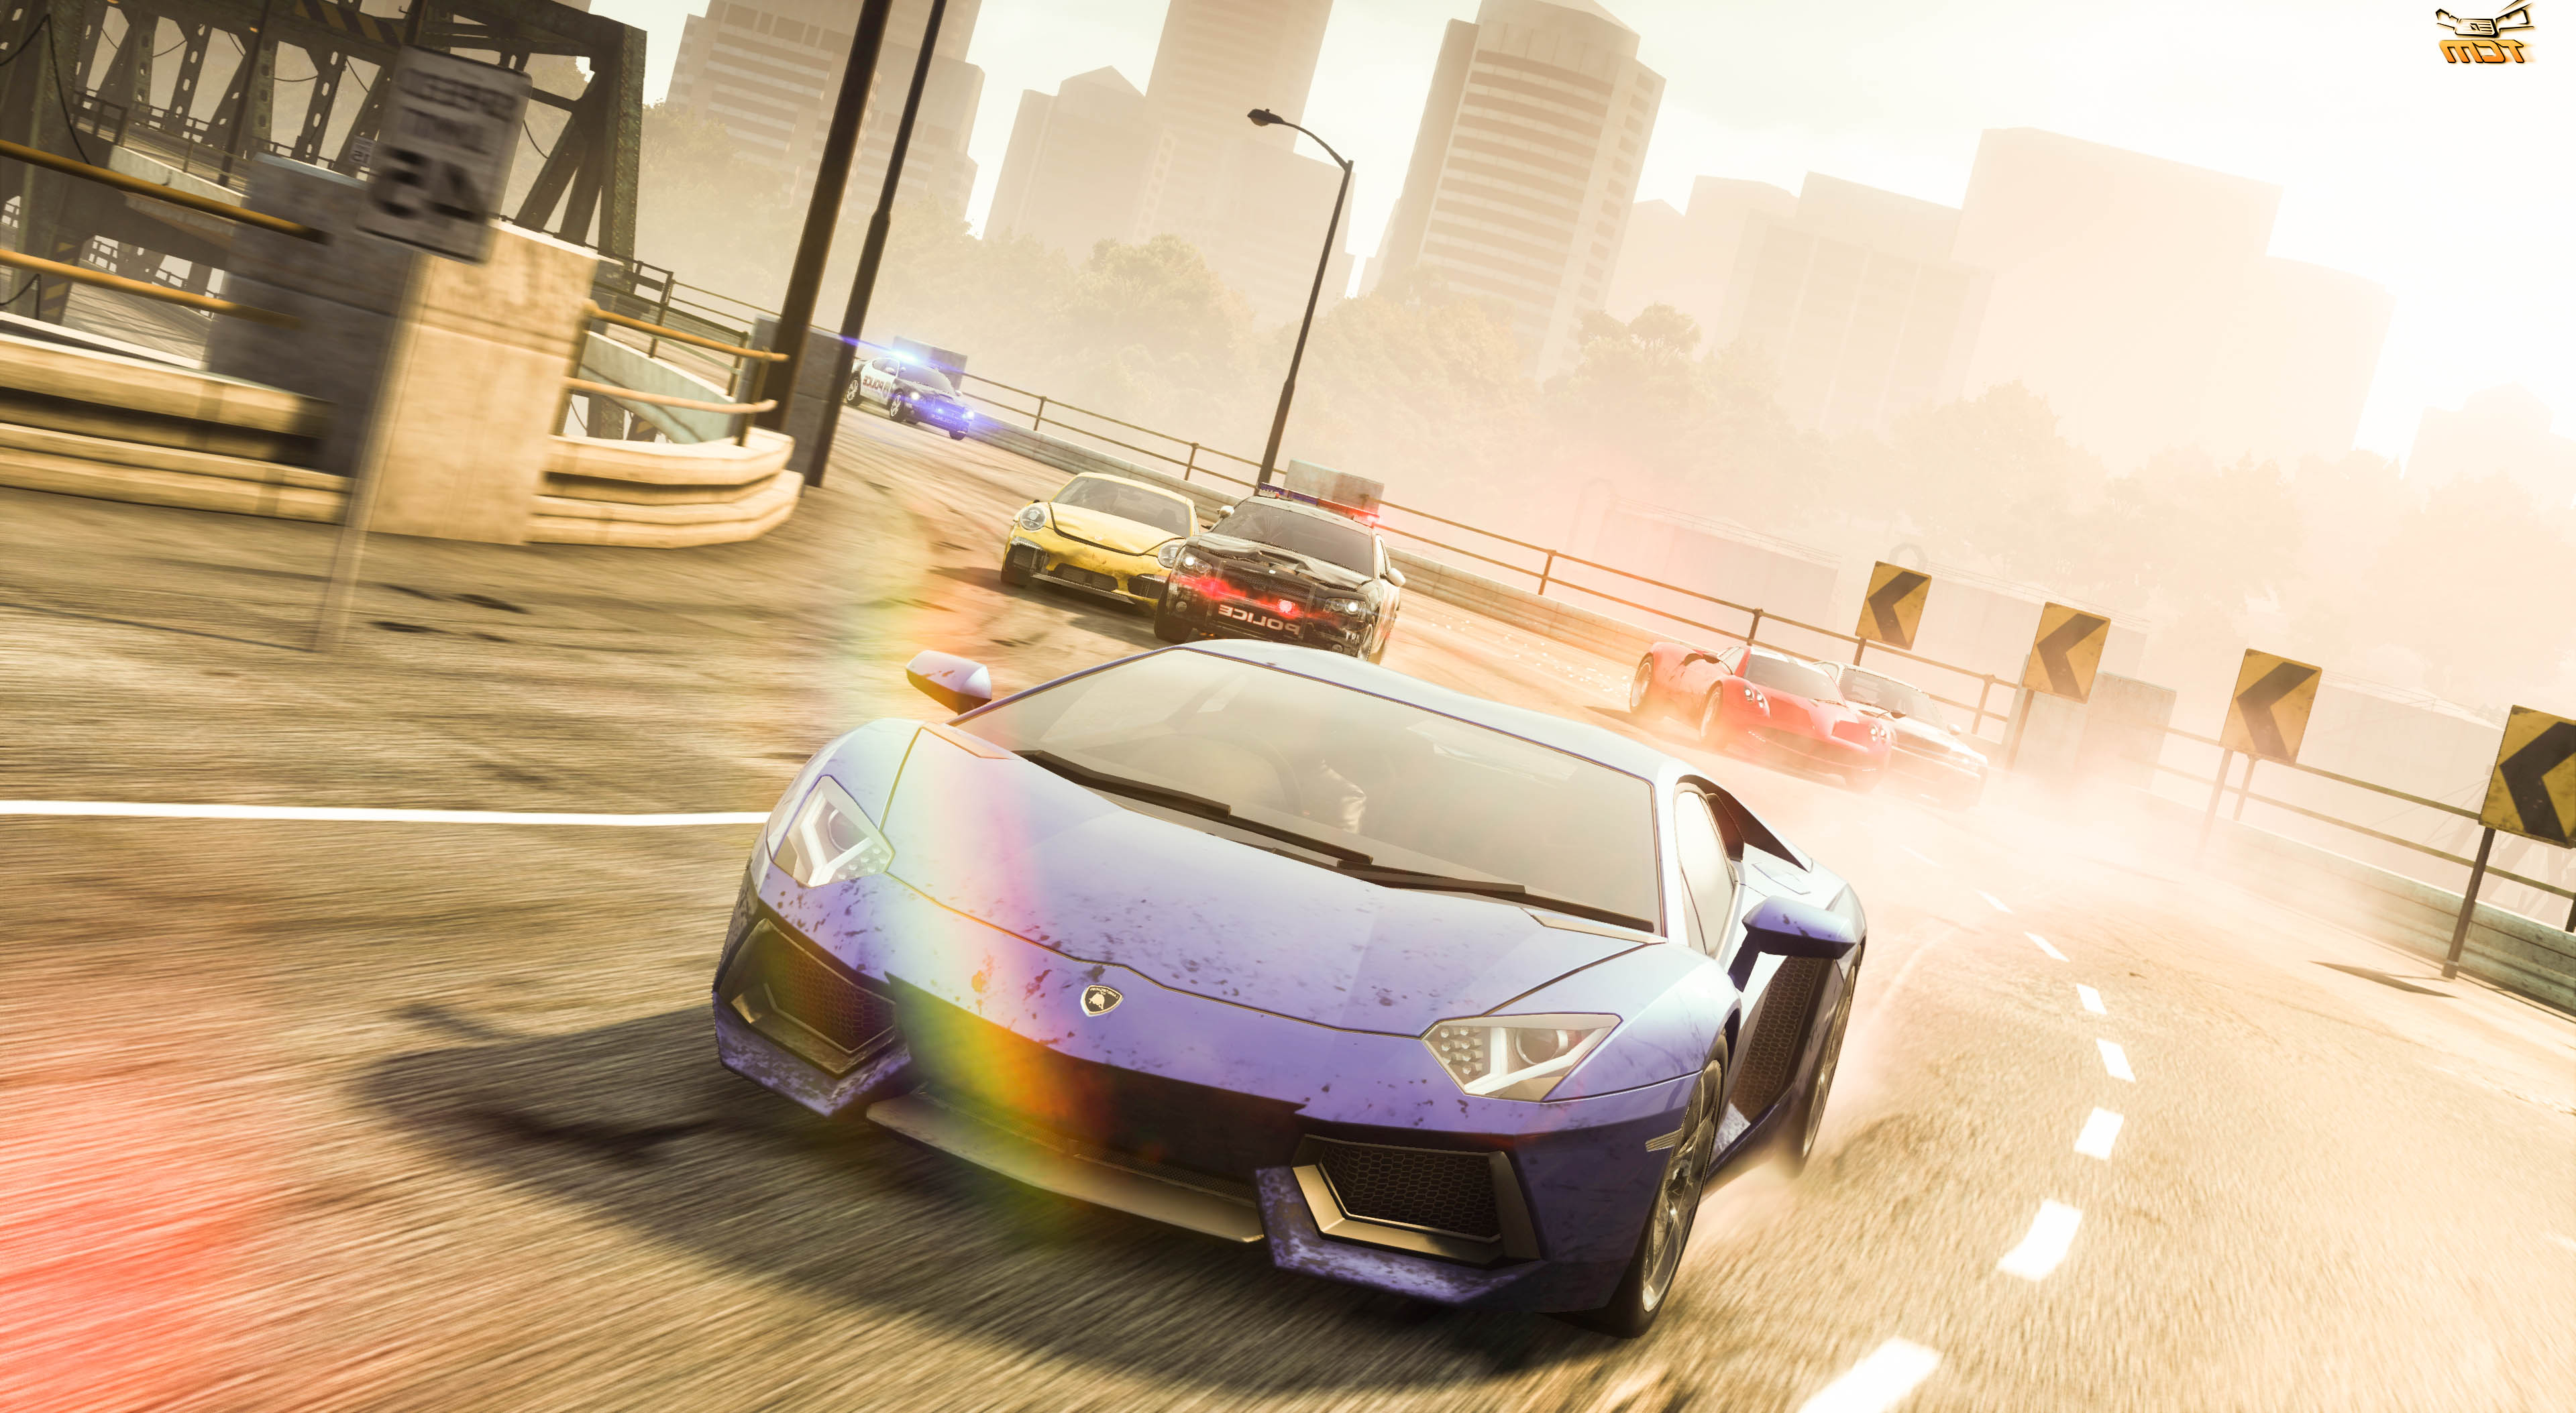 Need for speed most wanted wallpapers4 12.51.20 AM